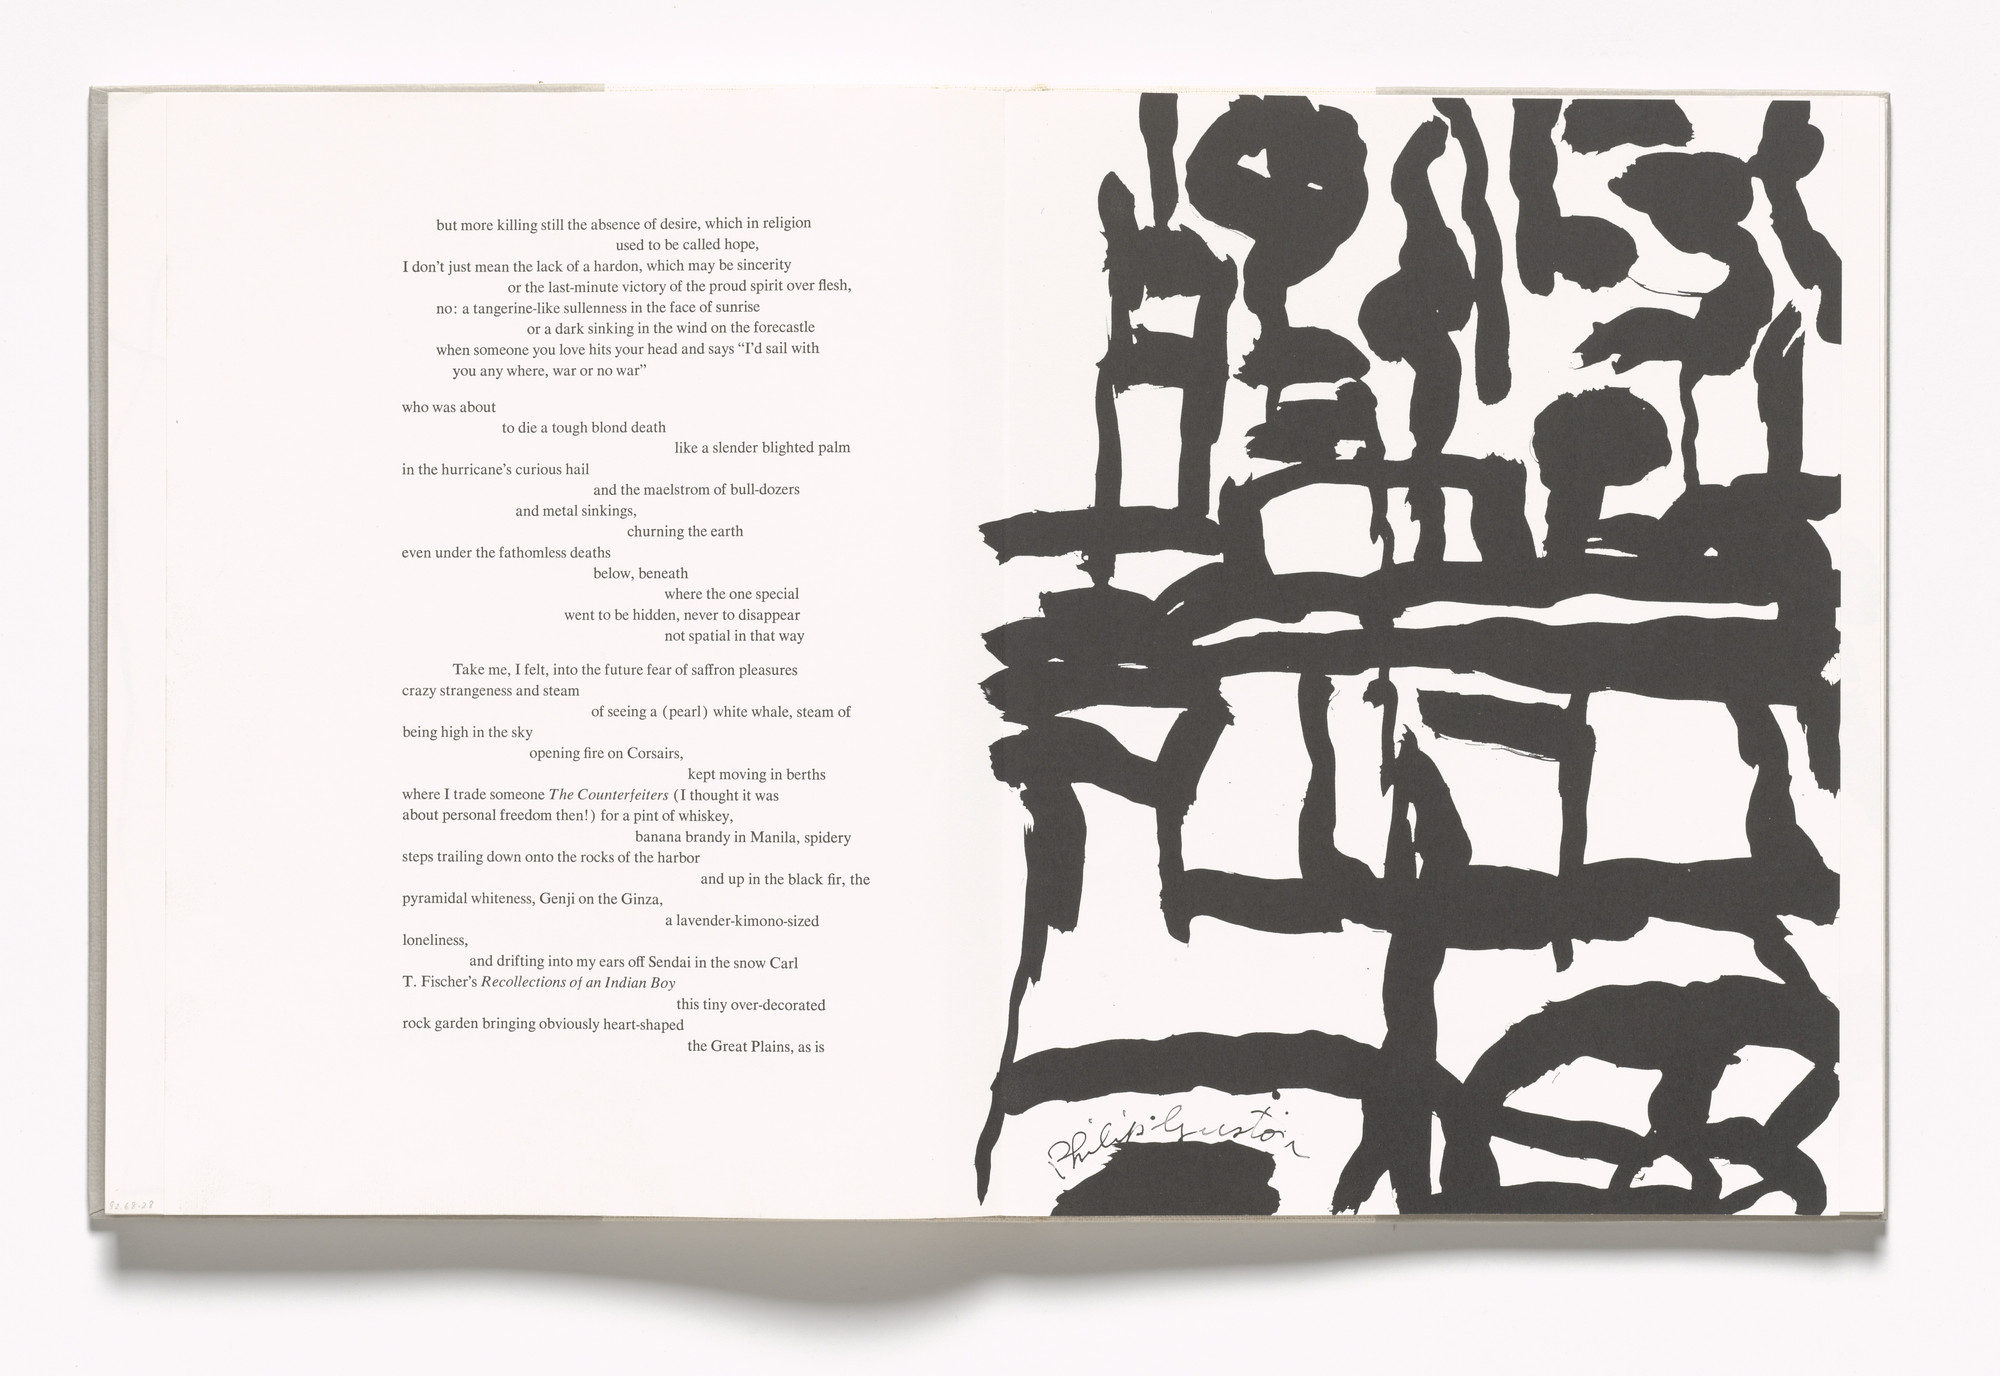 Philip Guston. In-text plate (folios 71 verso and 72 recto) from In Memory of My Feelings. 1967